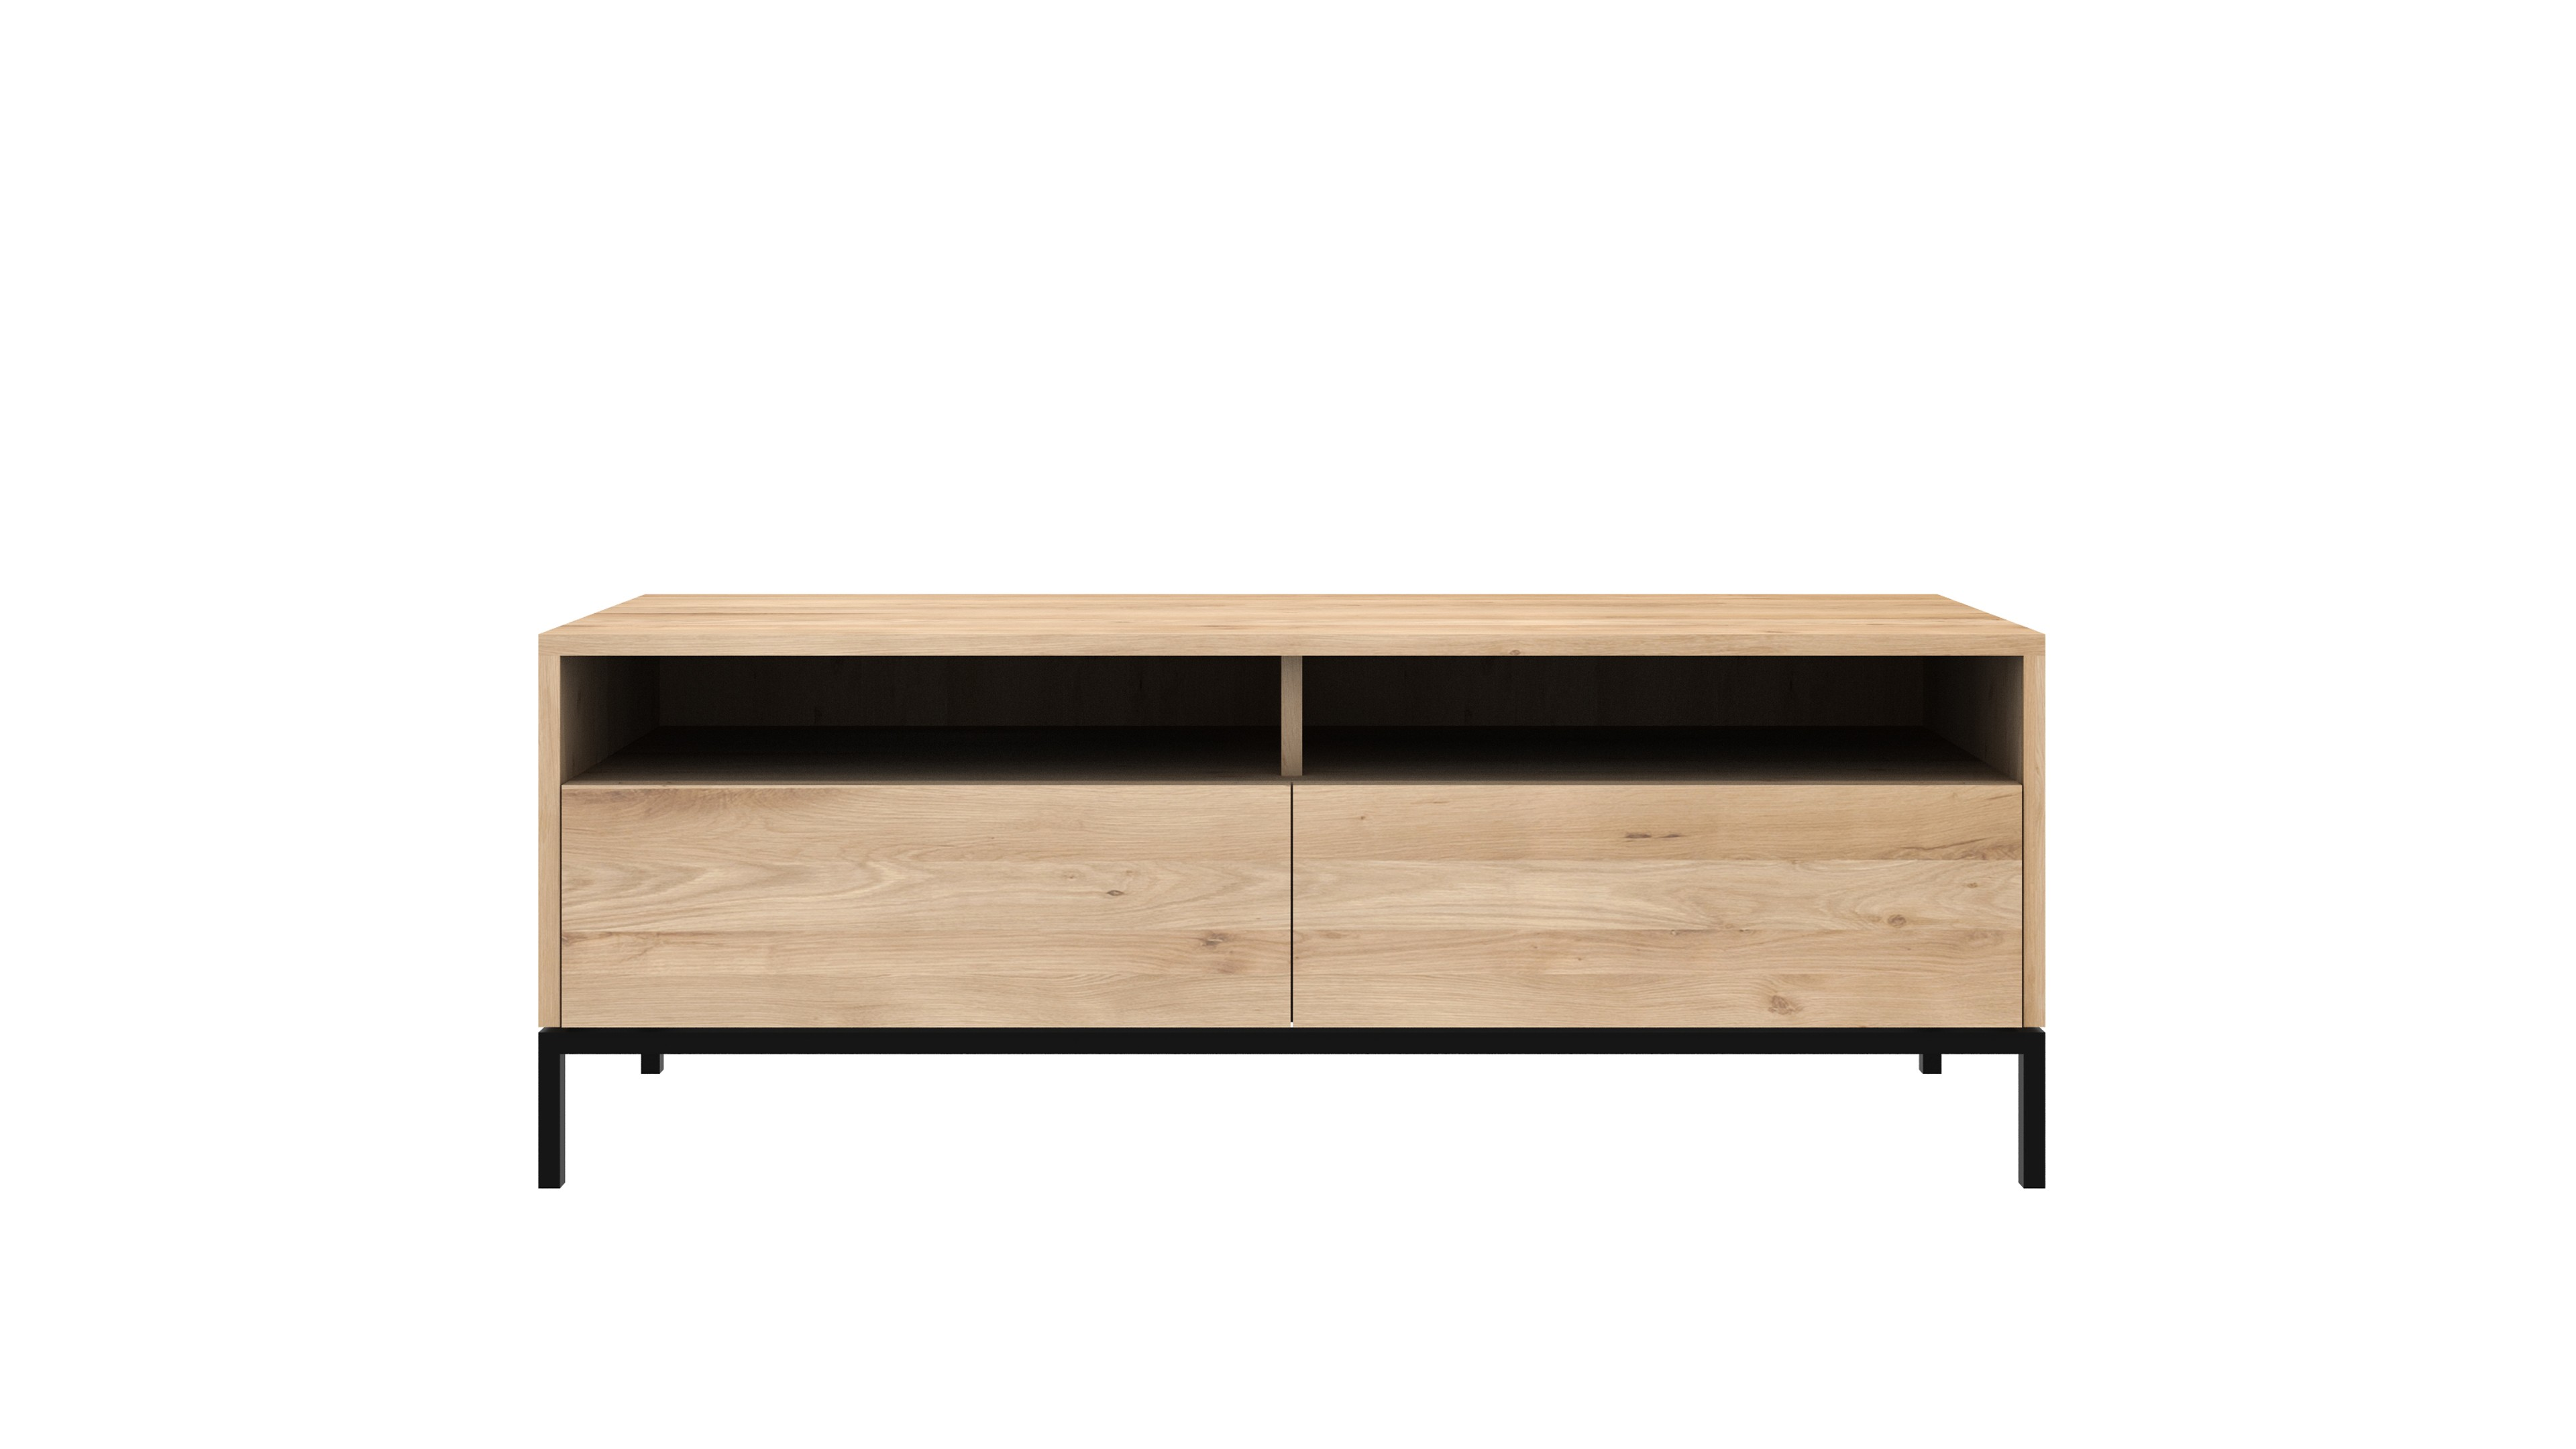 Ethnicraft Meuble Tv Meuble Tv Oak Ligna Ligna Black D Ethnicraft 2 Options 2 Tailles